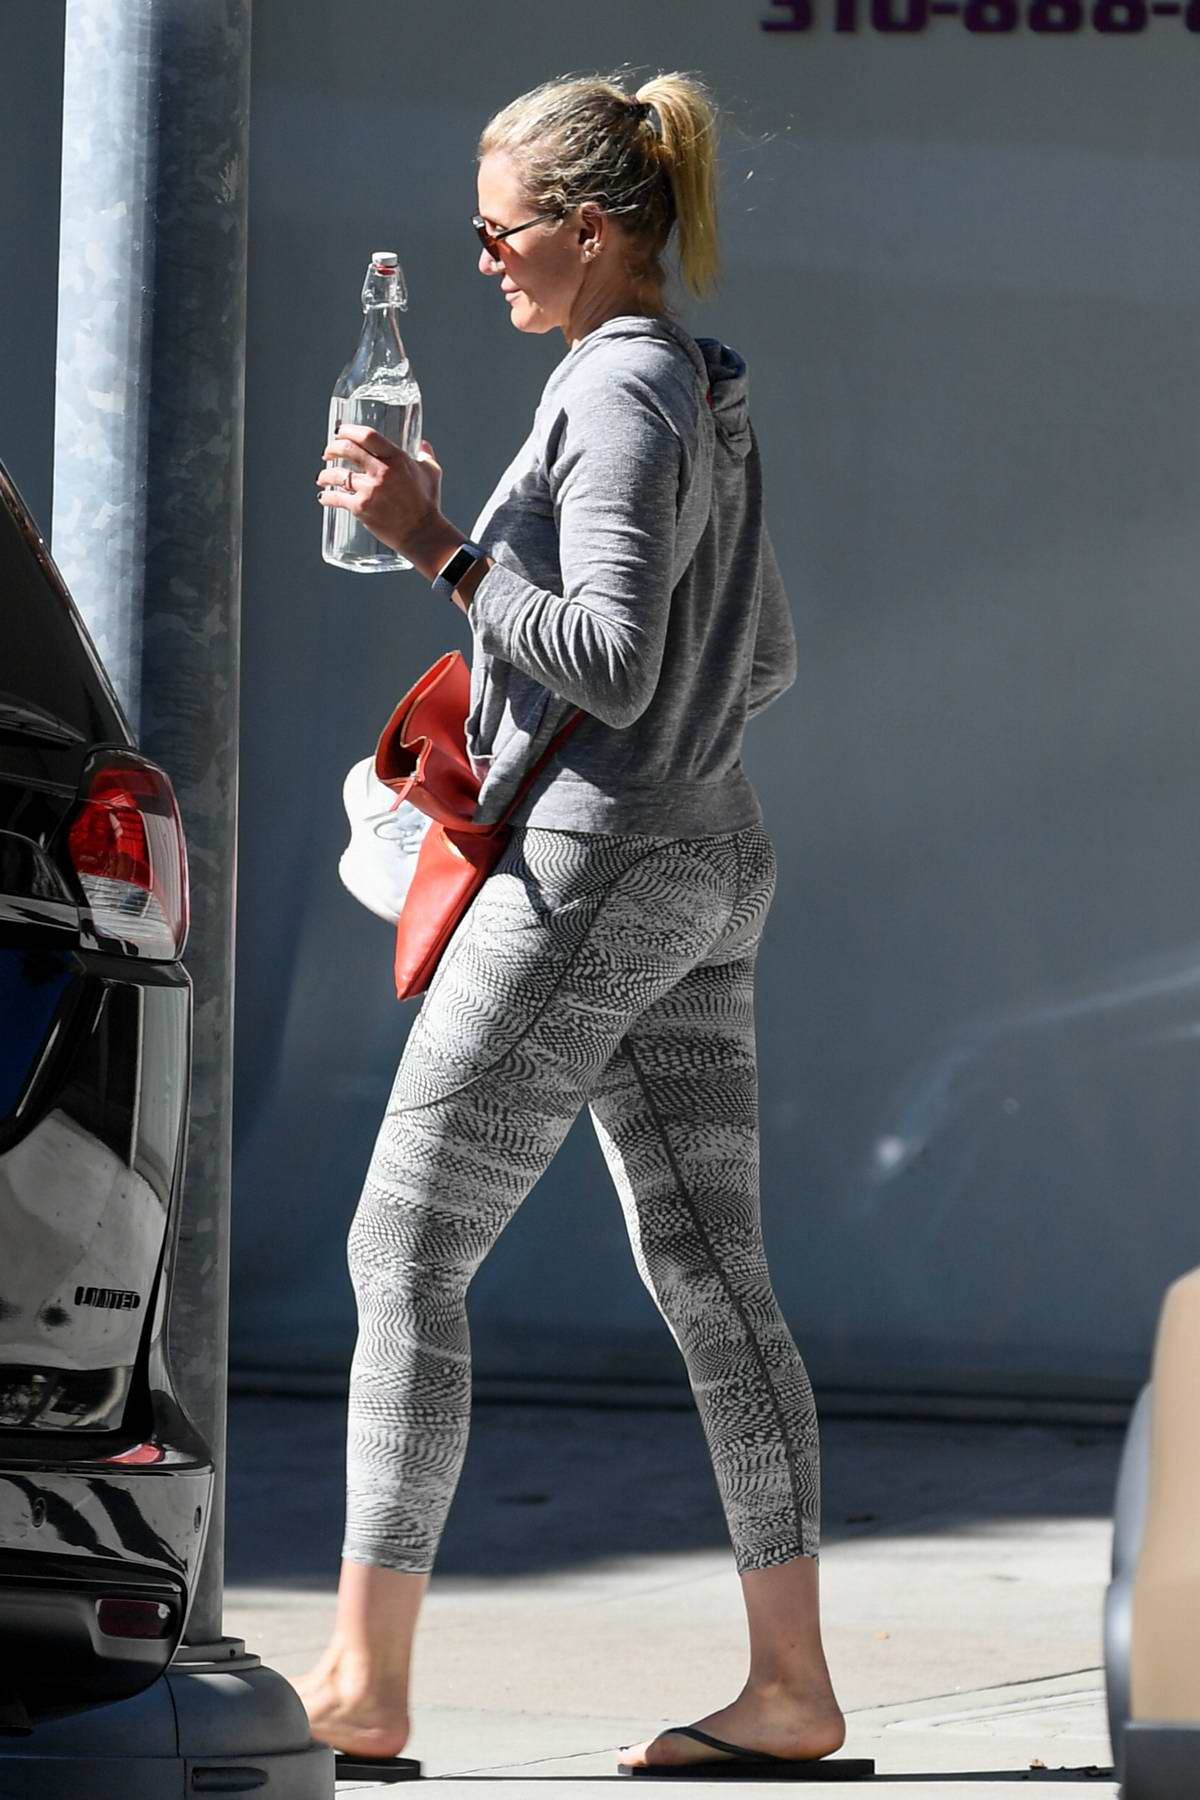 Cameron Diaz stops by a nail salon after leaving the gym in Beverly Hills, Los Angeles